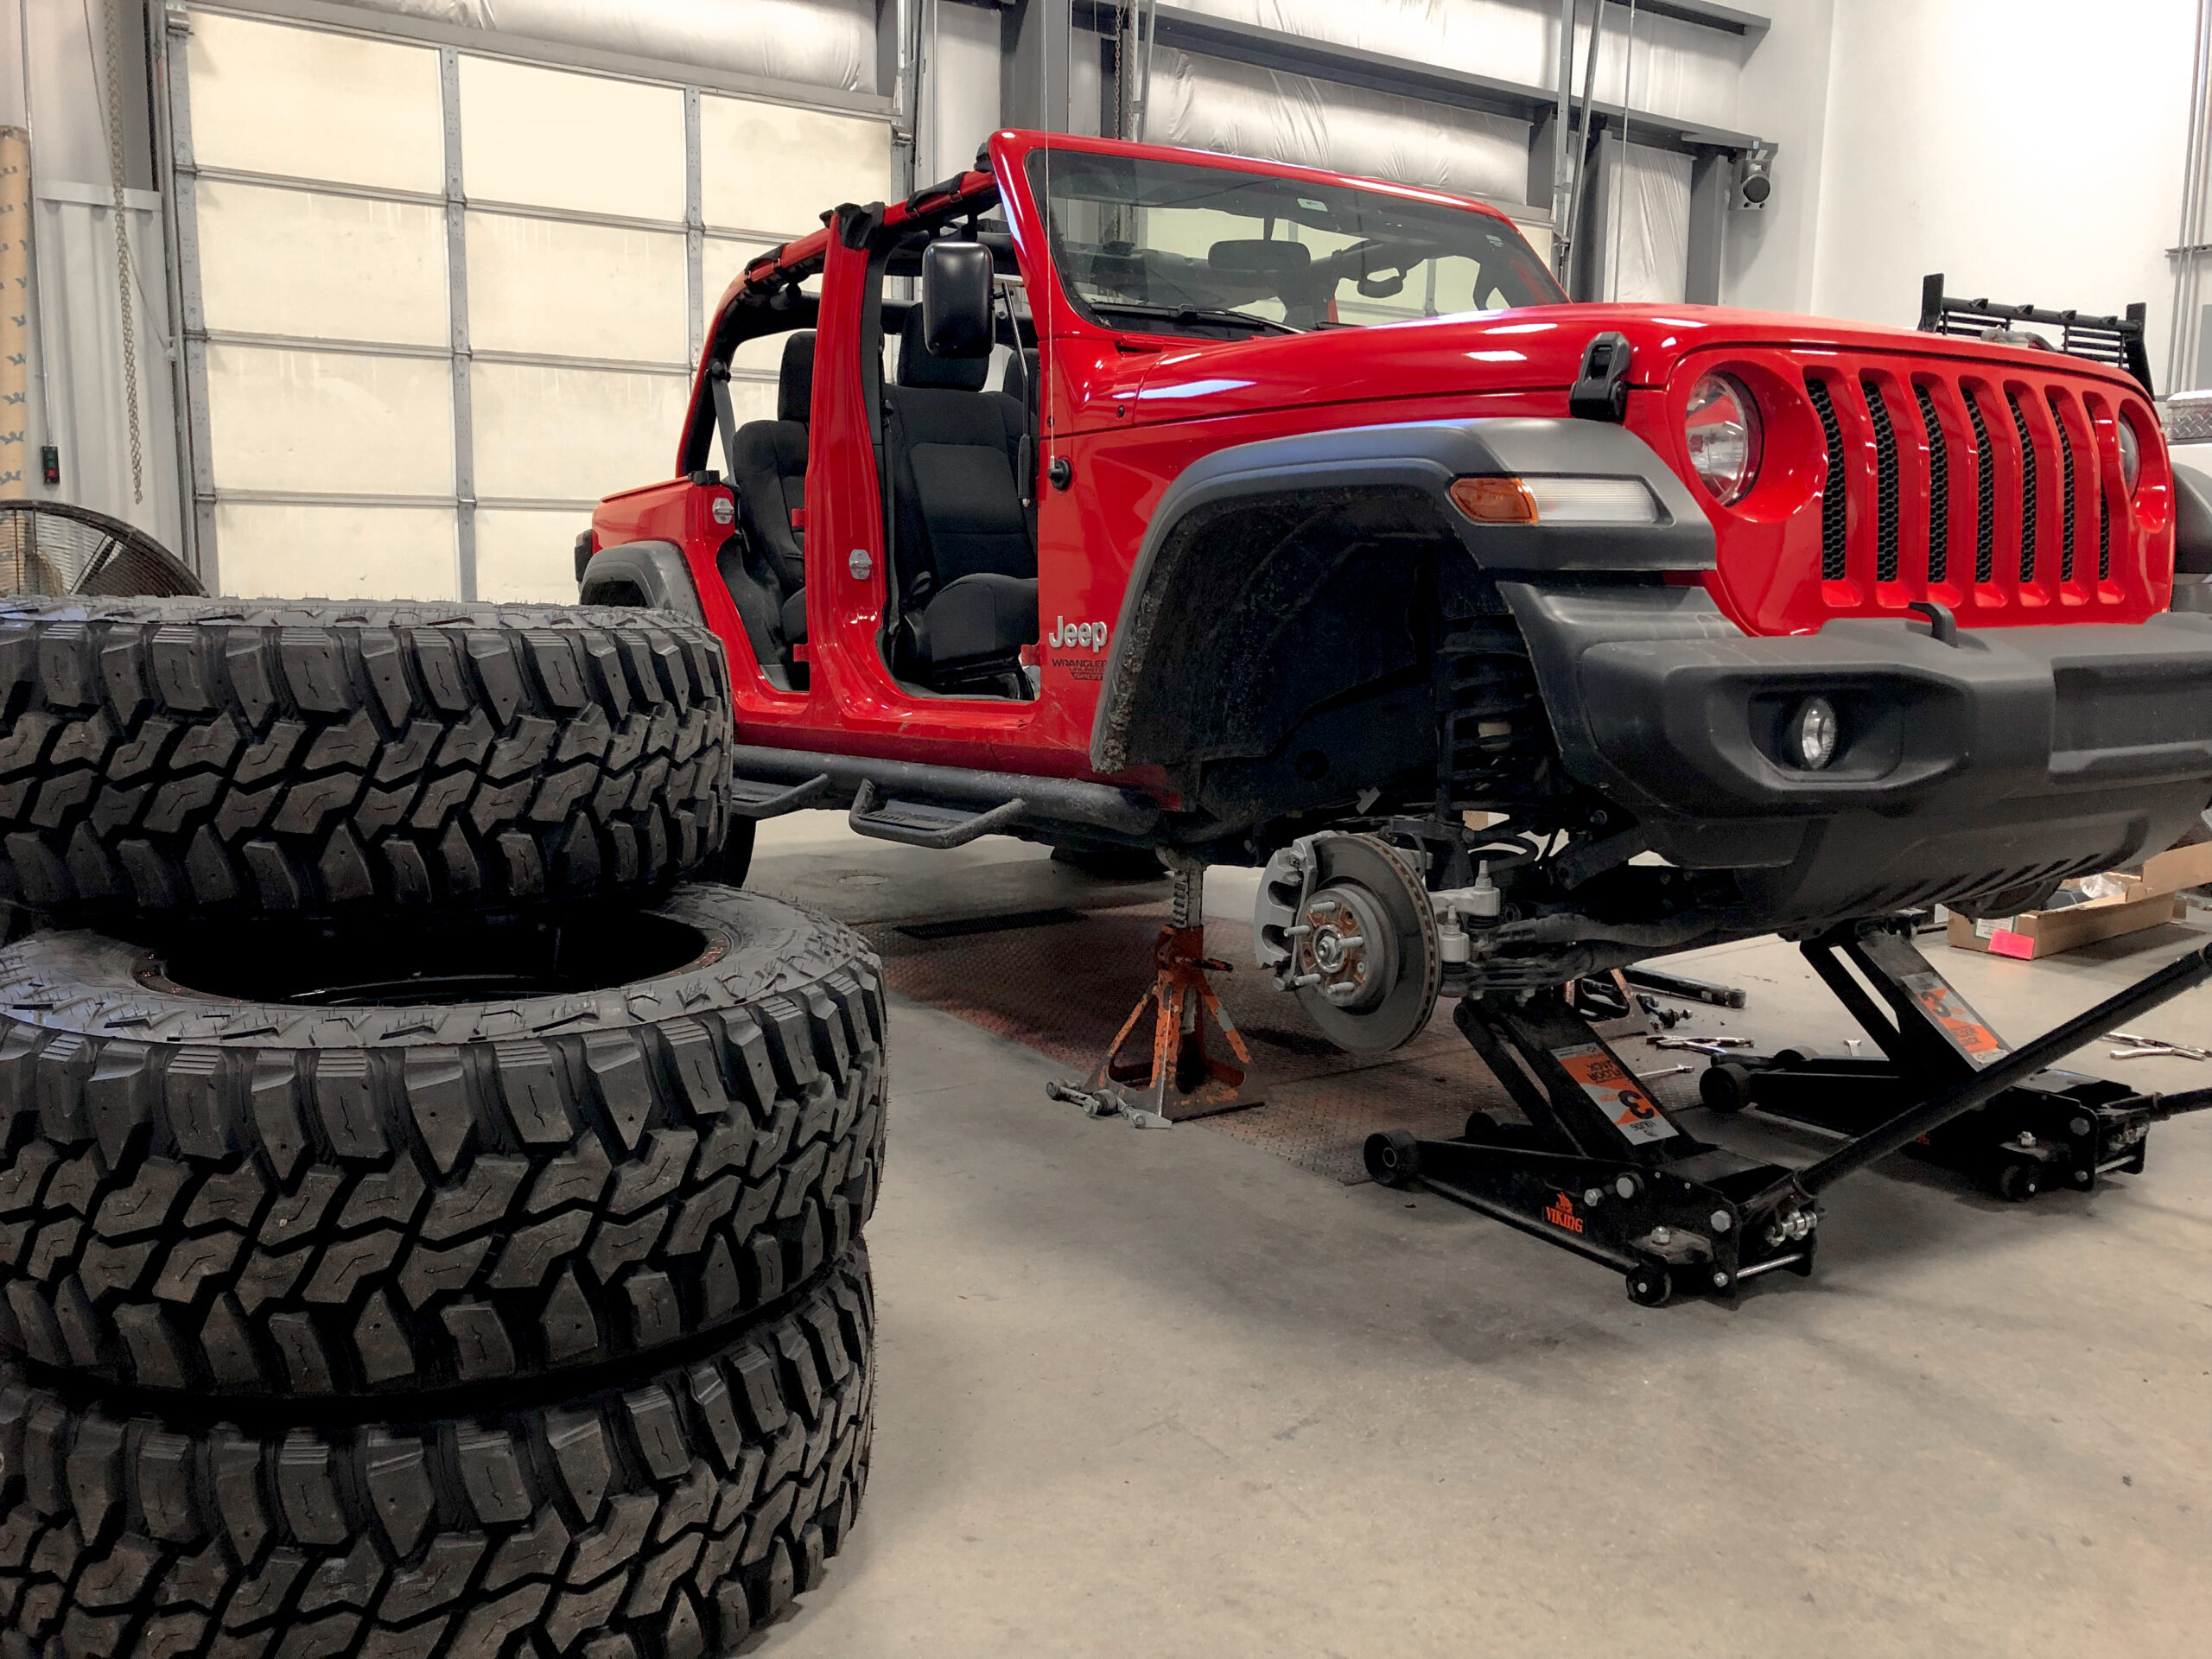 Red Jeep inside shop, resting on a jack and missing a tire